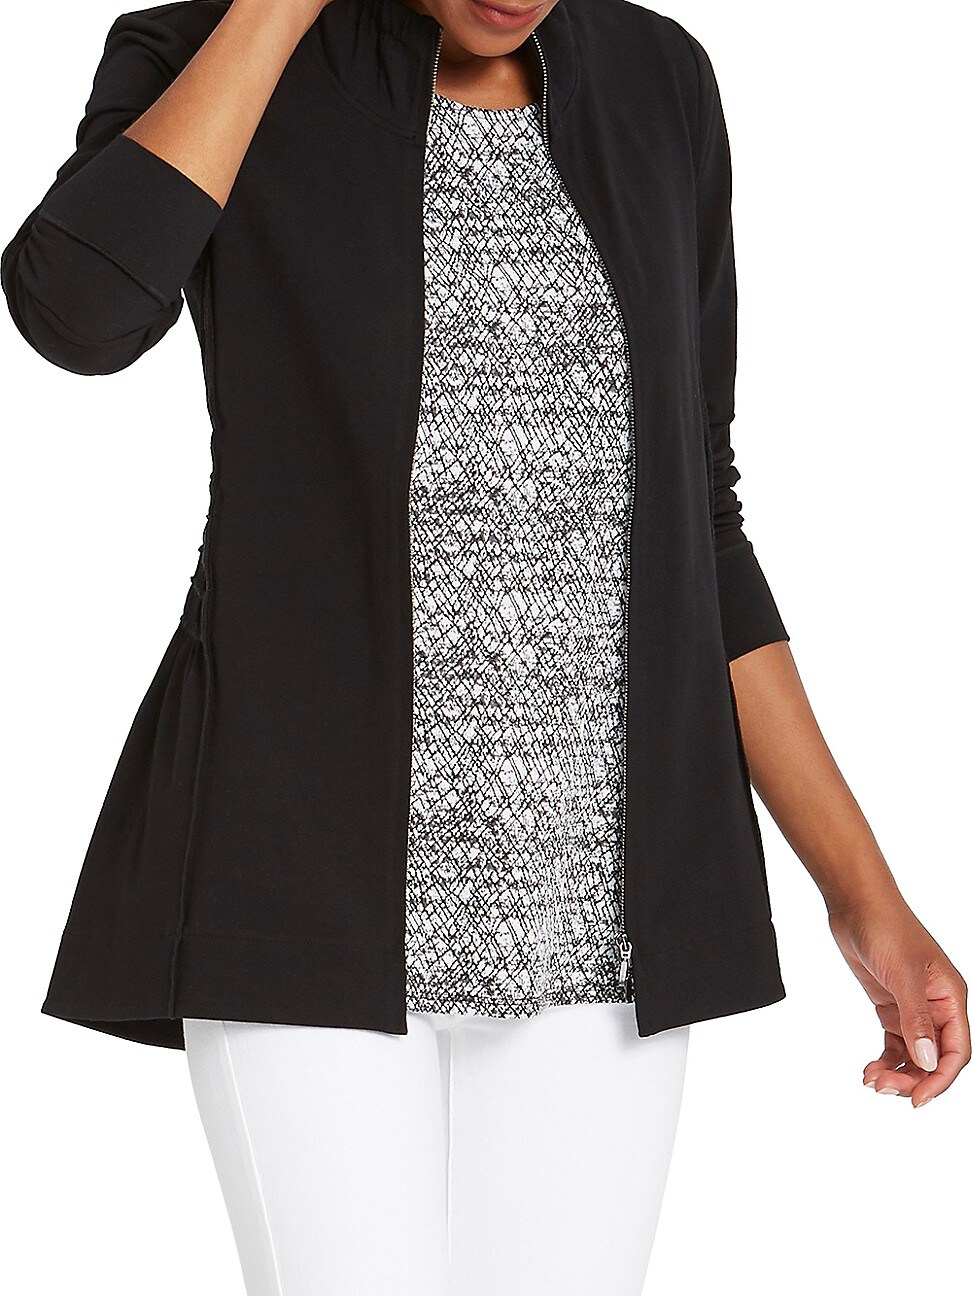 Nic + Zoe WOMEN'S PERFECT KNIT RUCHED JACKET